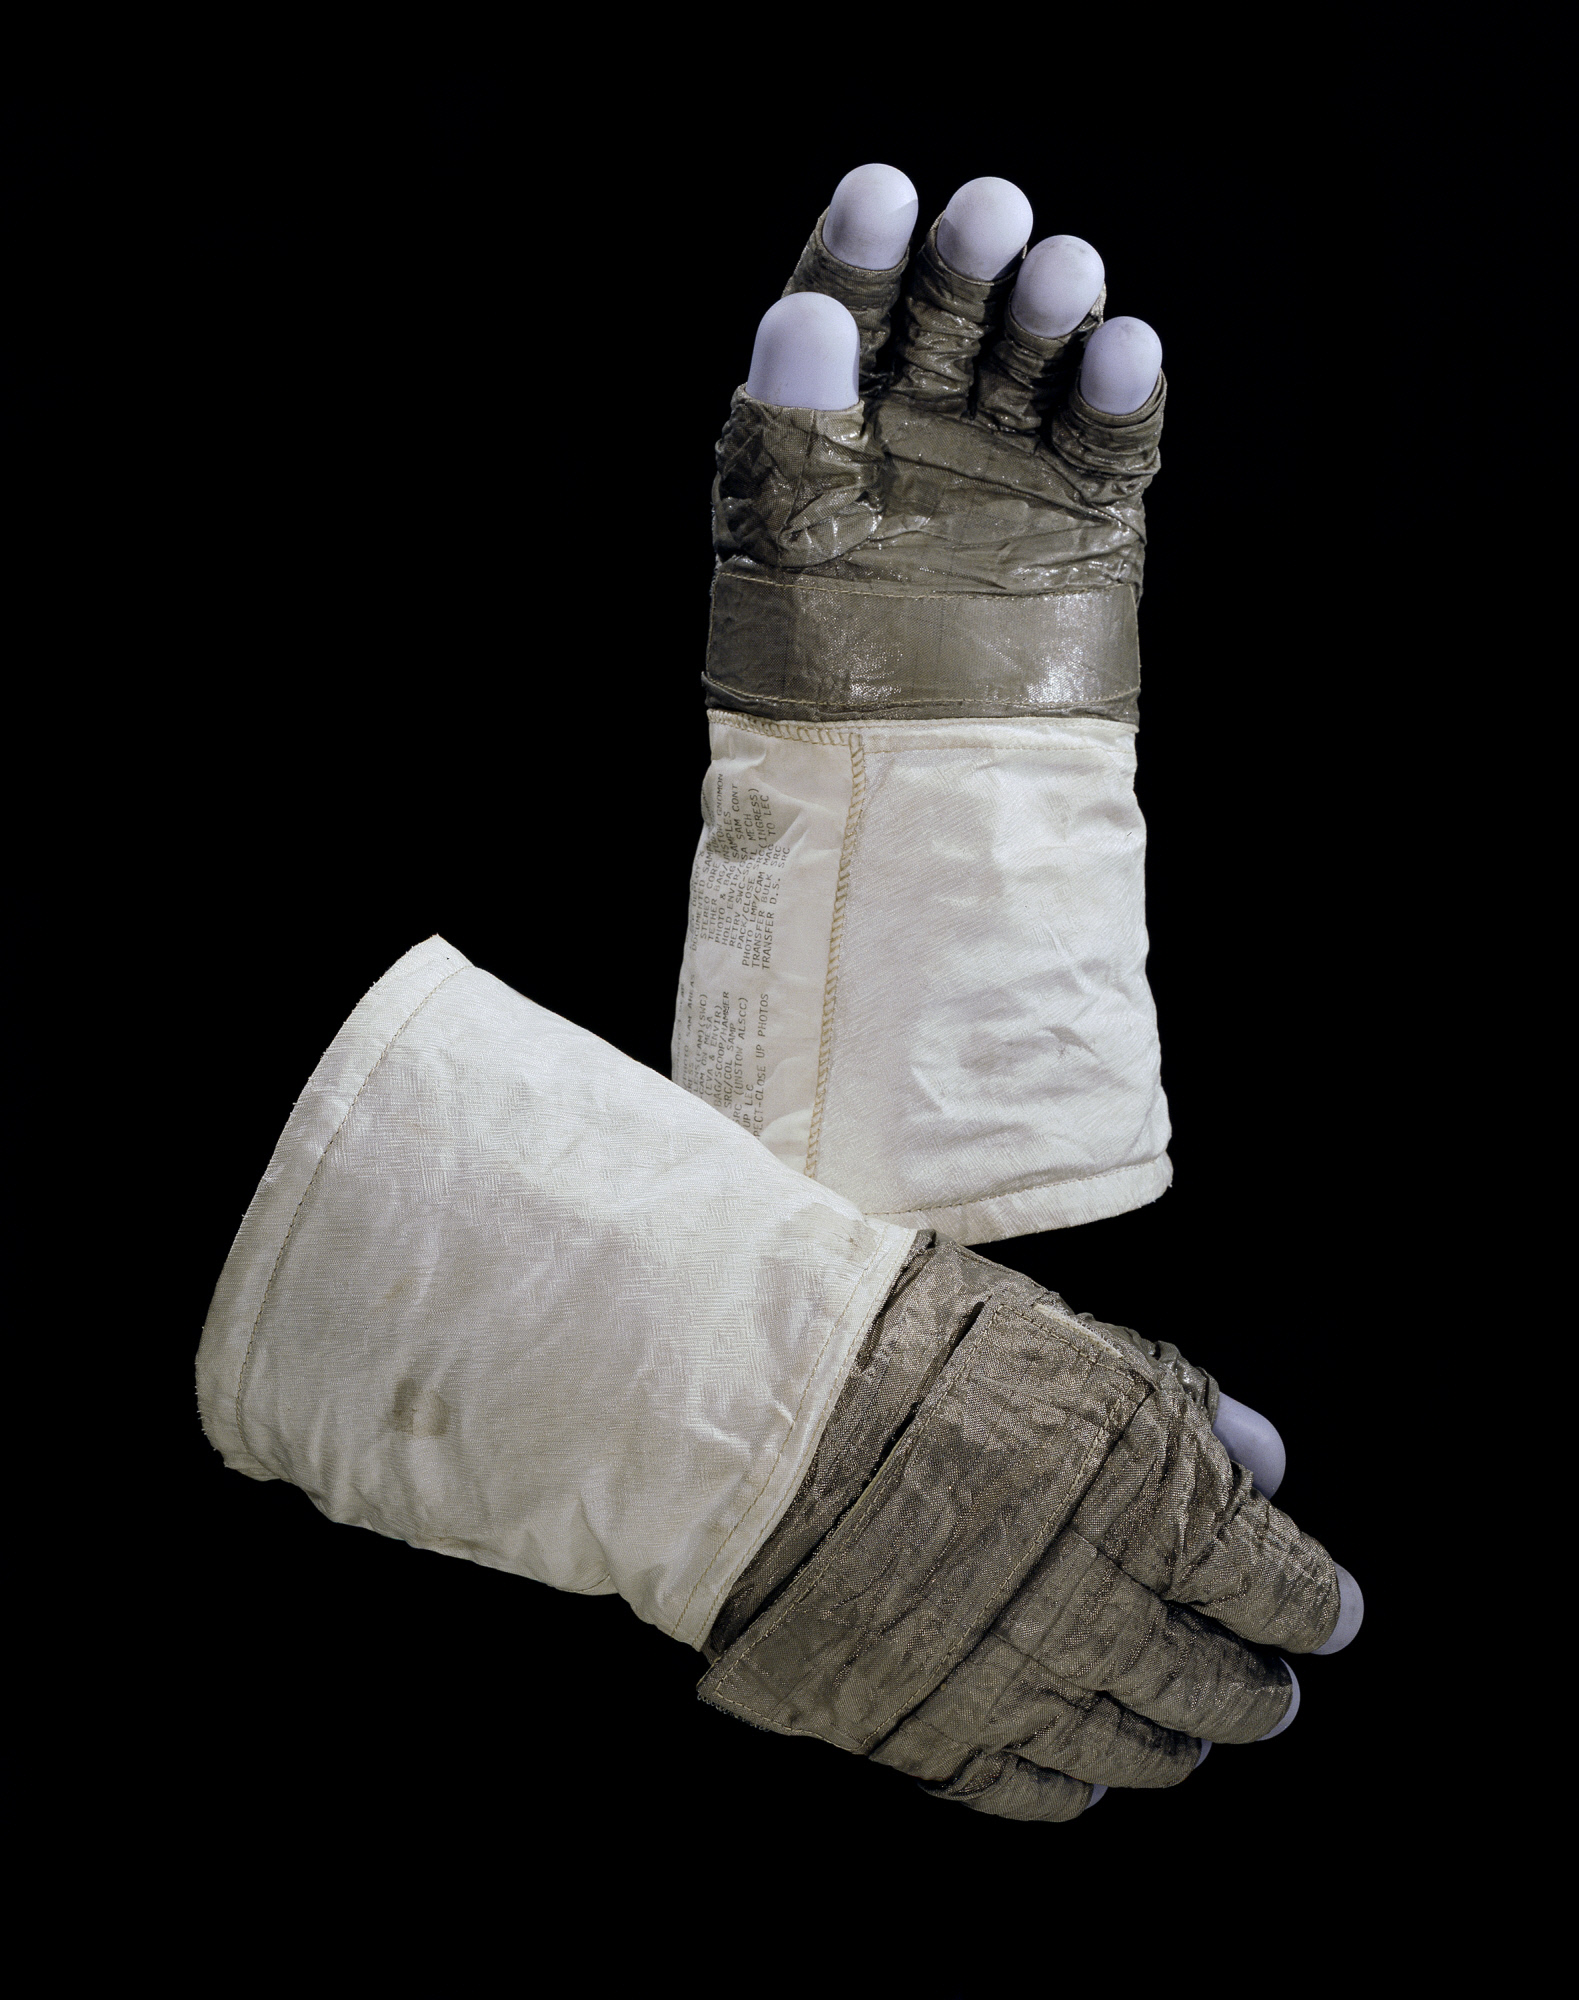 space suit glove hardware - photo #11